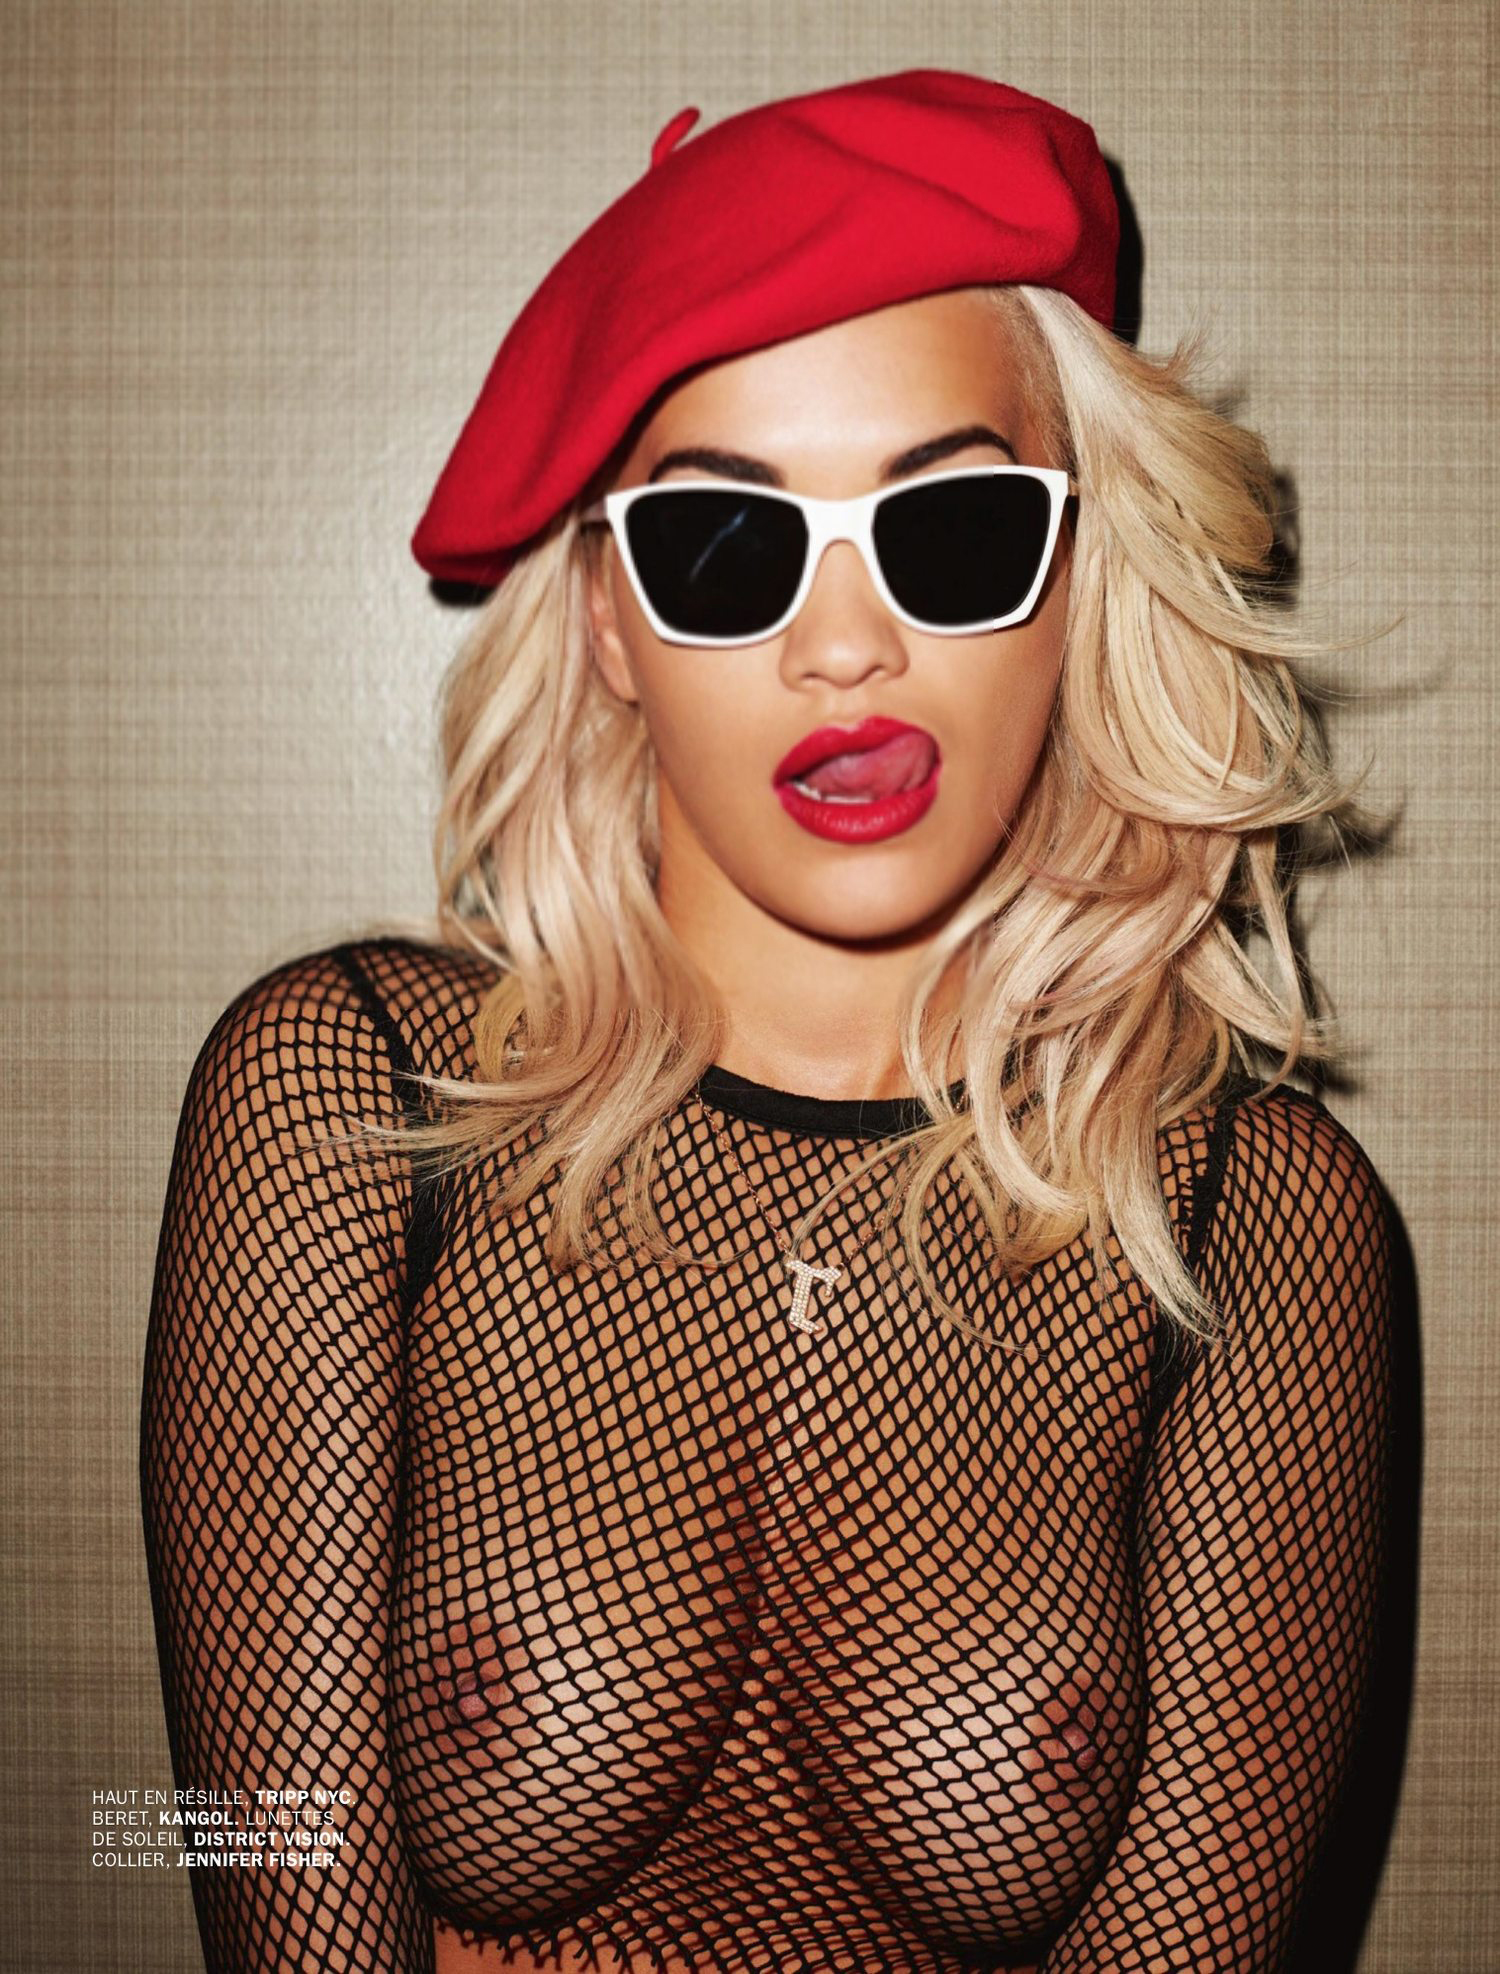 rita-ora-terry-richardson-photoshoot-for-lui-magazine-february-2016-folkr-02-bis